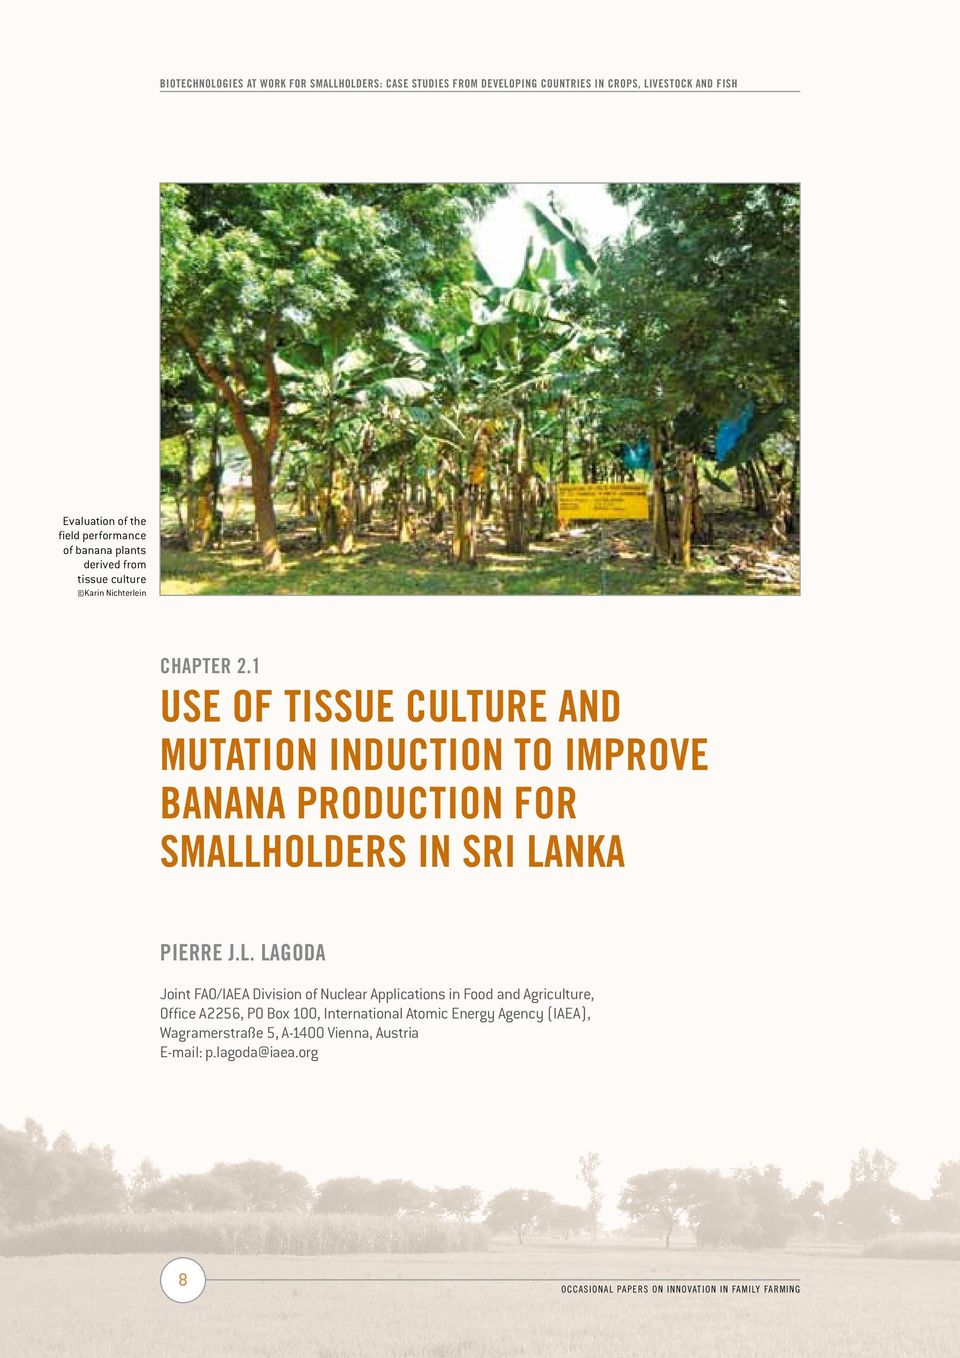 1 Use of Tissue Culture and Mutation Induction to Improve Banana Production for Smallholders in Sri La